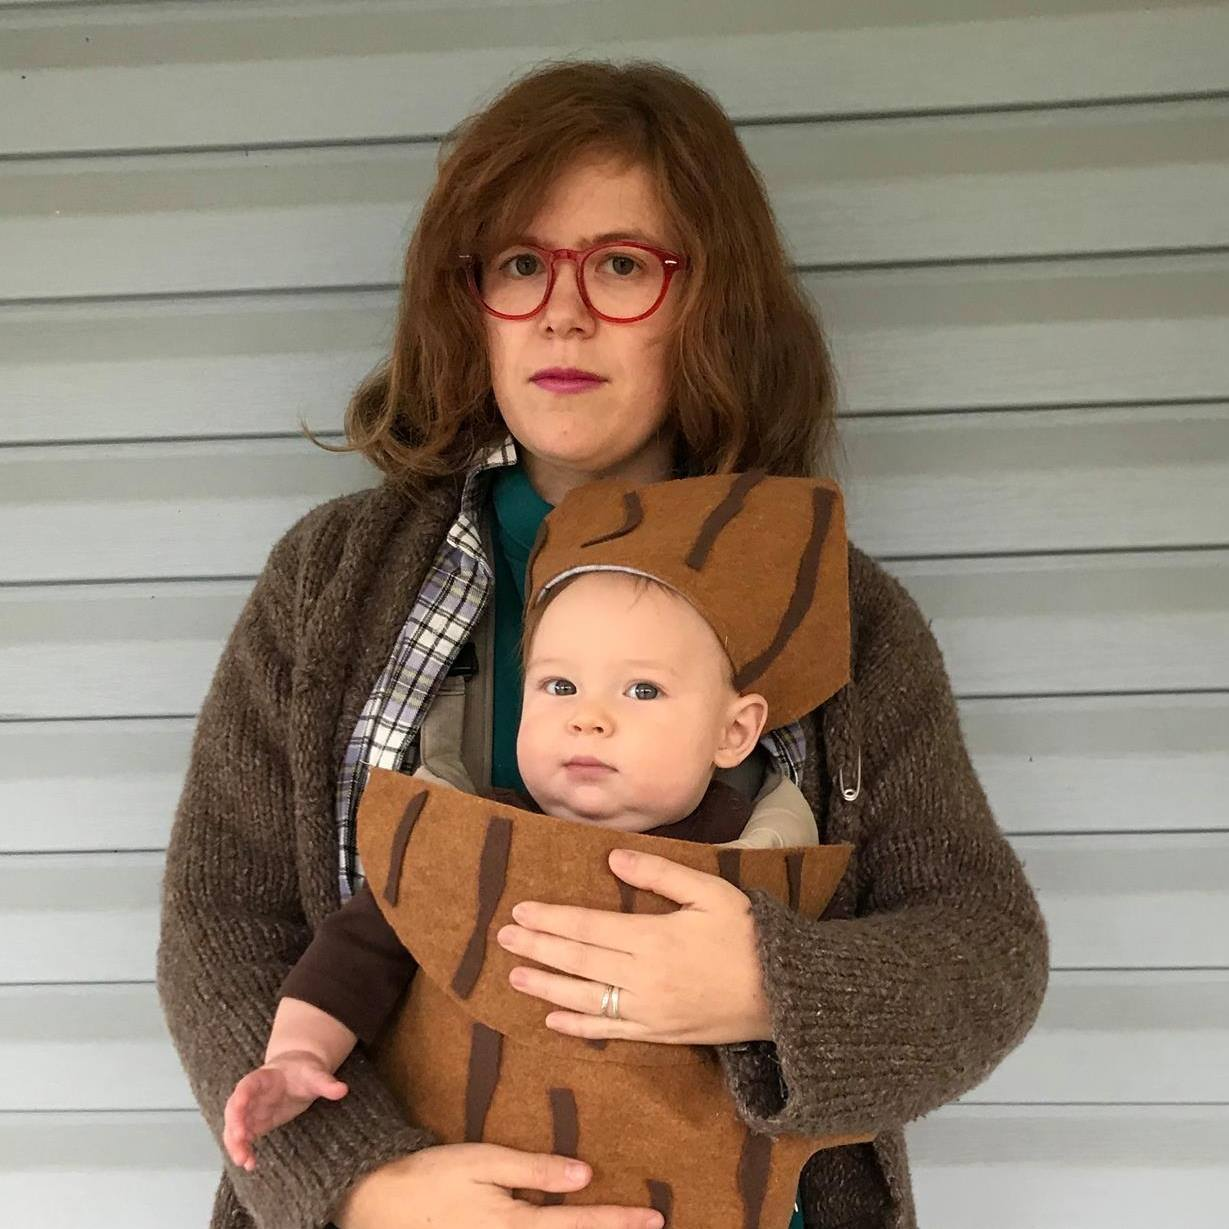 Me and River dressed up as the Log Lady and her log for Halloween 2017